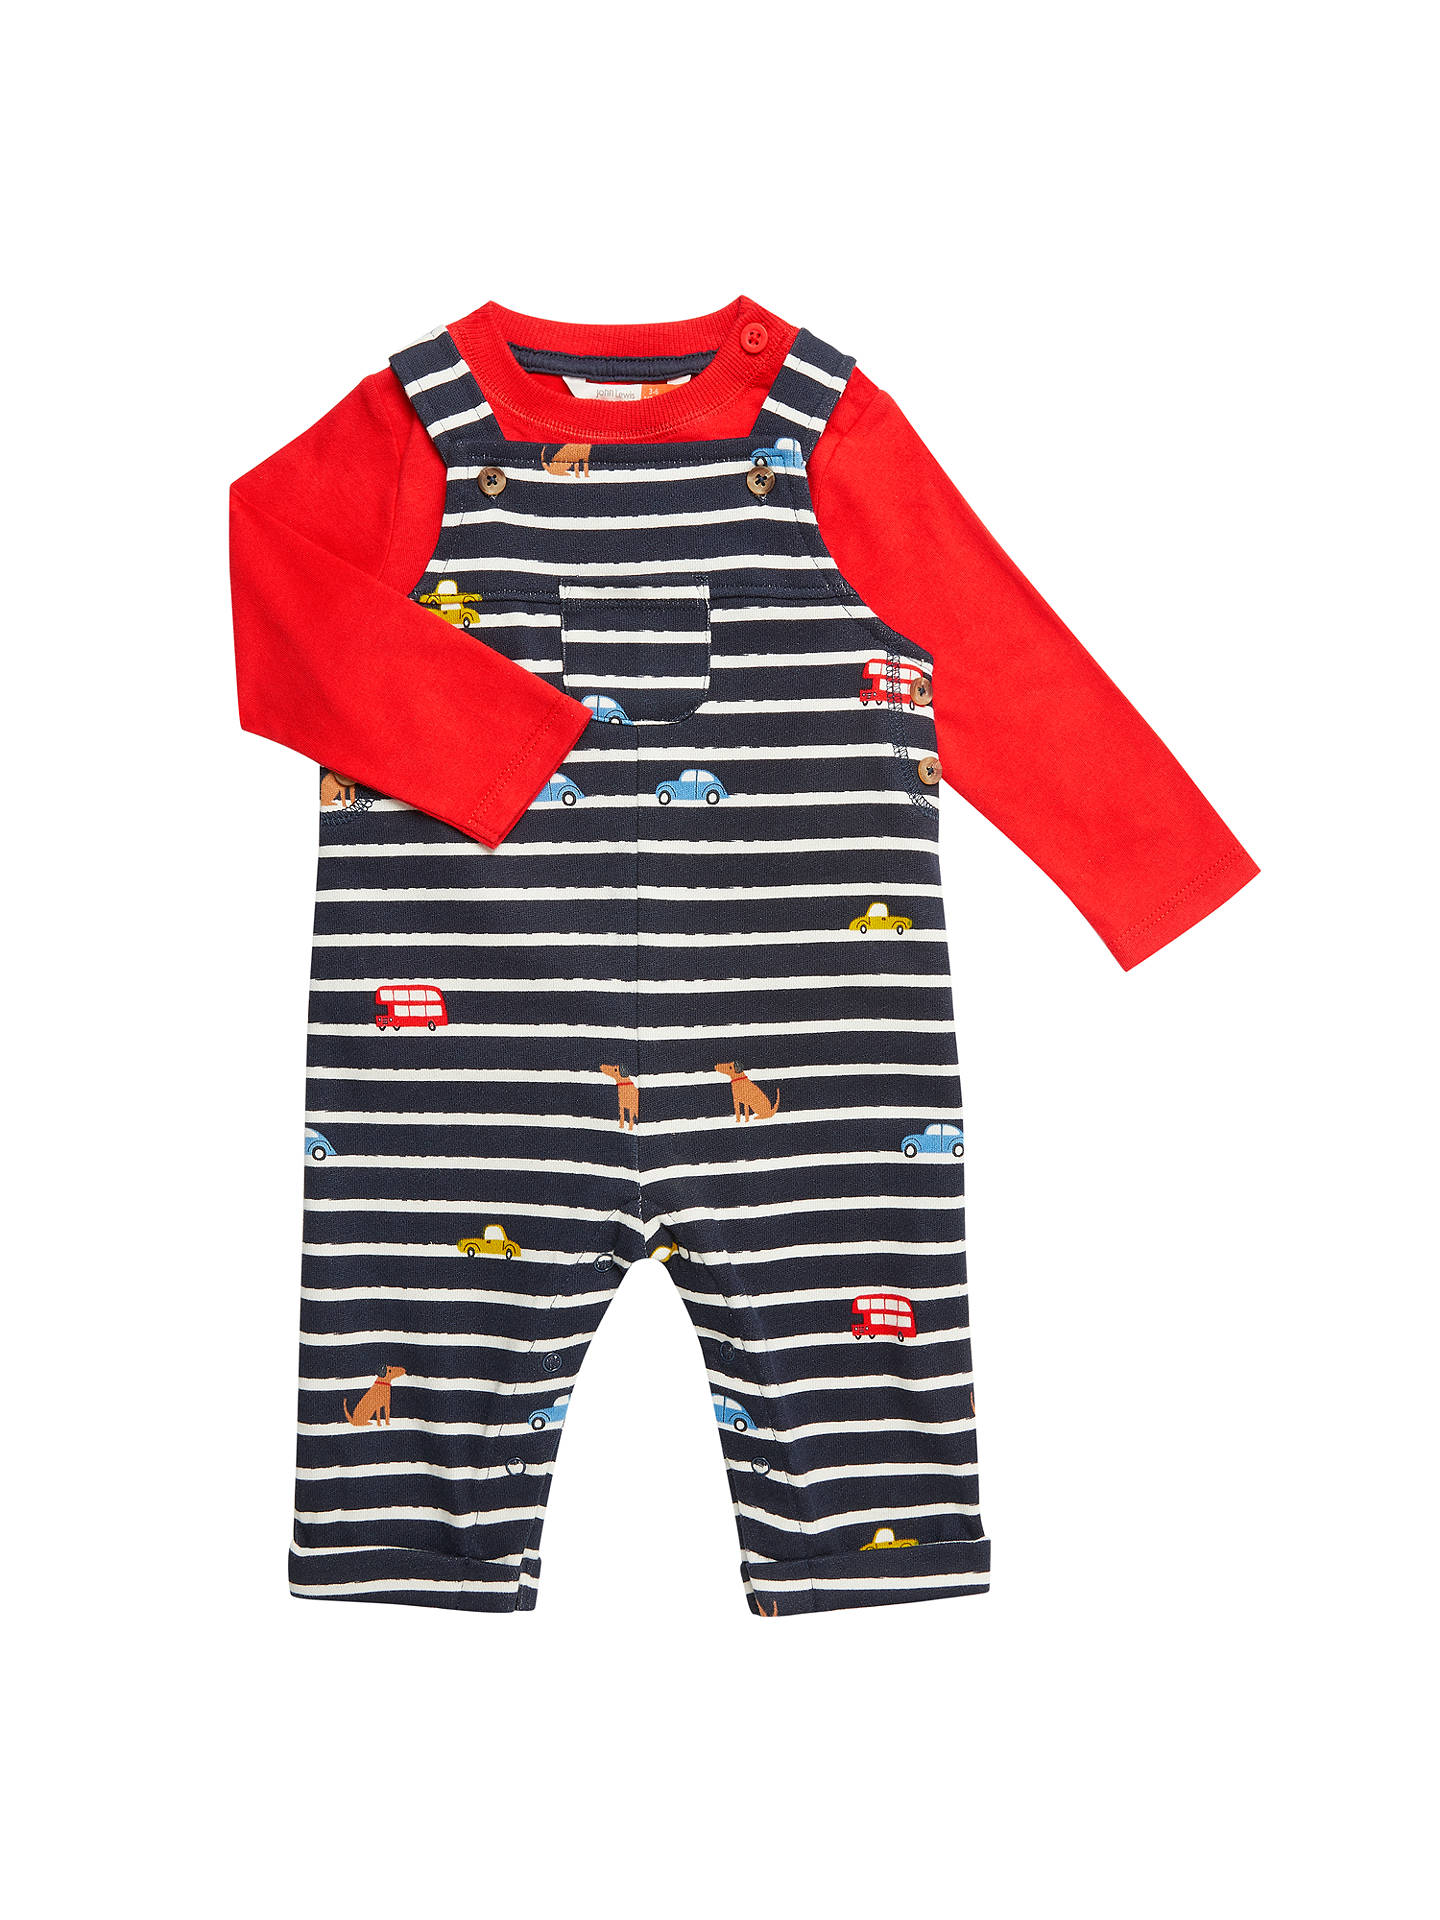 Clothes, Shoes & Accessories Ted Baker Baby Boy Shorts Dungarees Set 0-3 Months Modern Design Baby